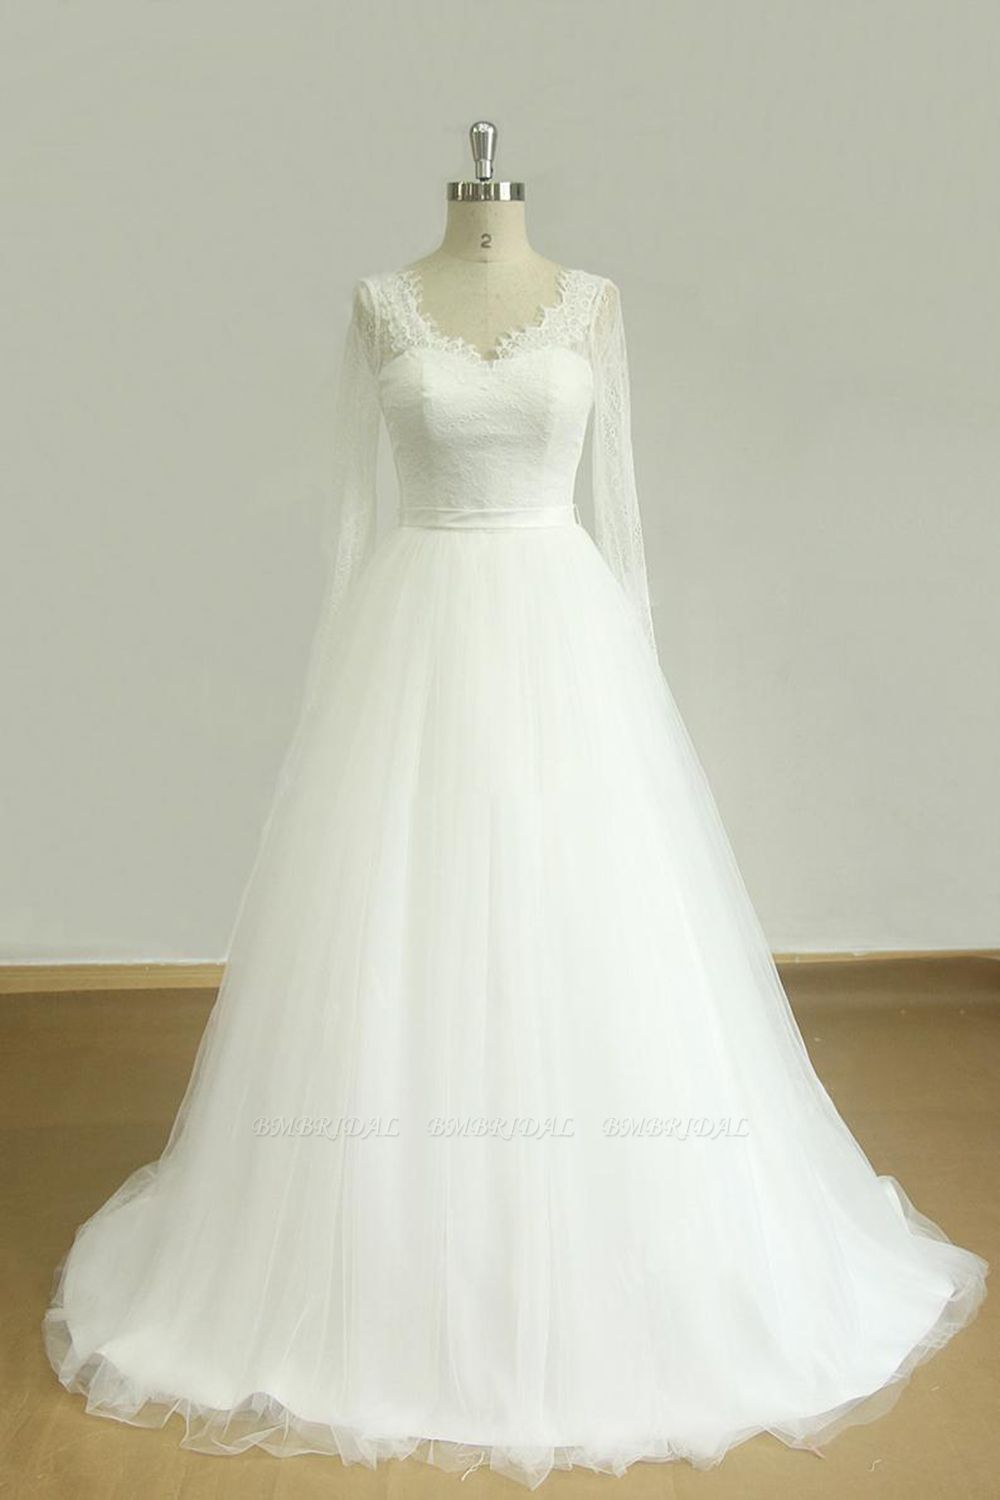 BMbridal Affordable A-line White Lace Tulle Wedding Dress Longsleeves V-neck Bridal Gowns On Sale